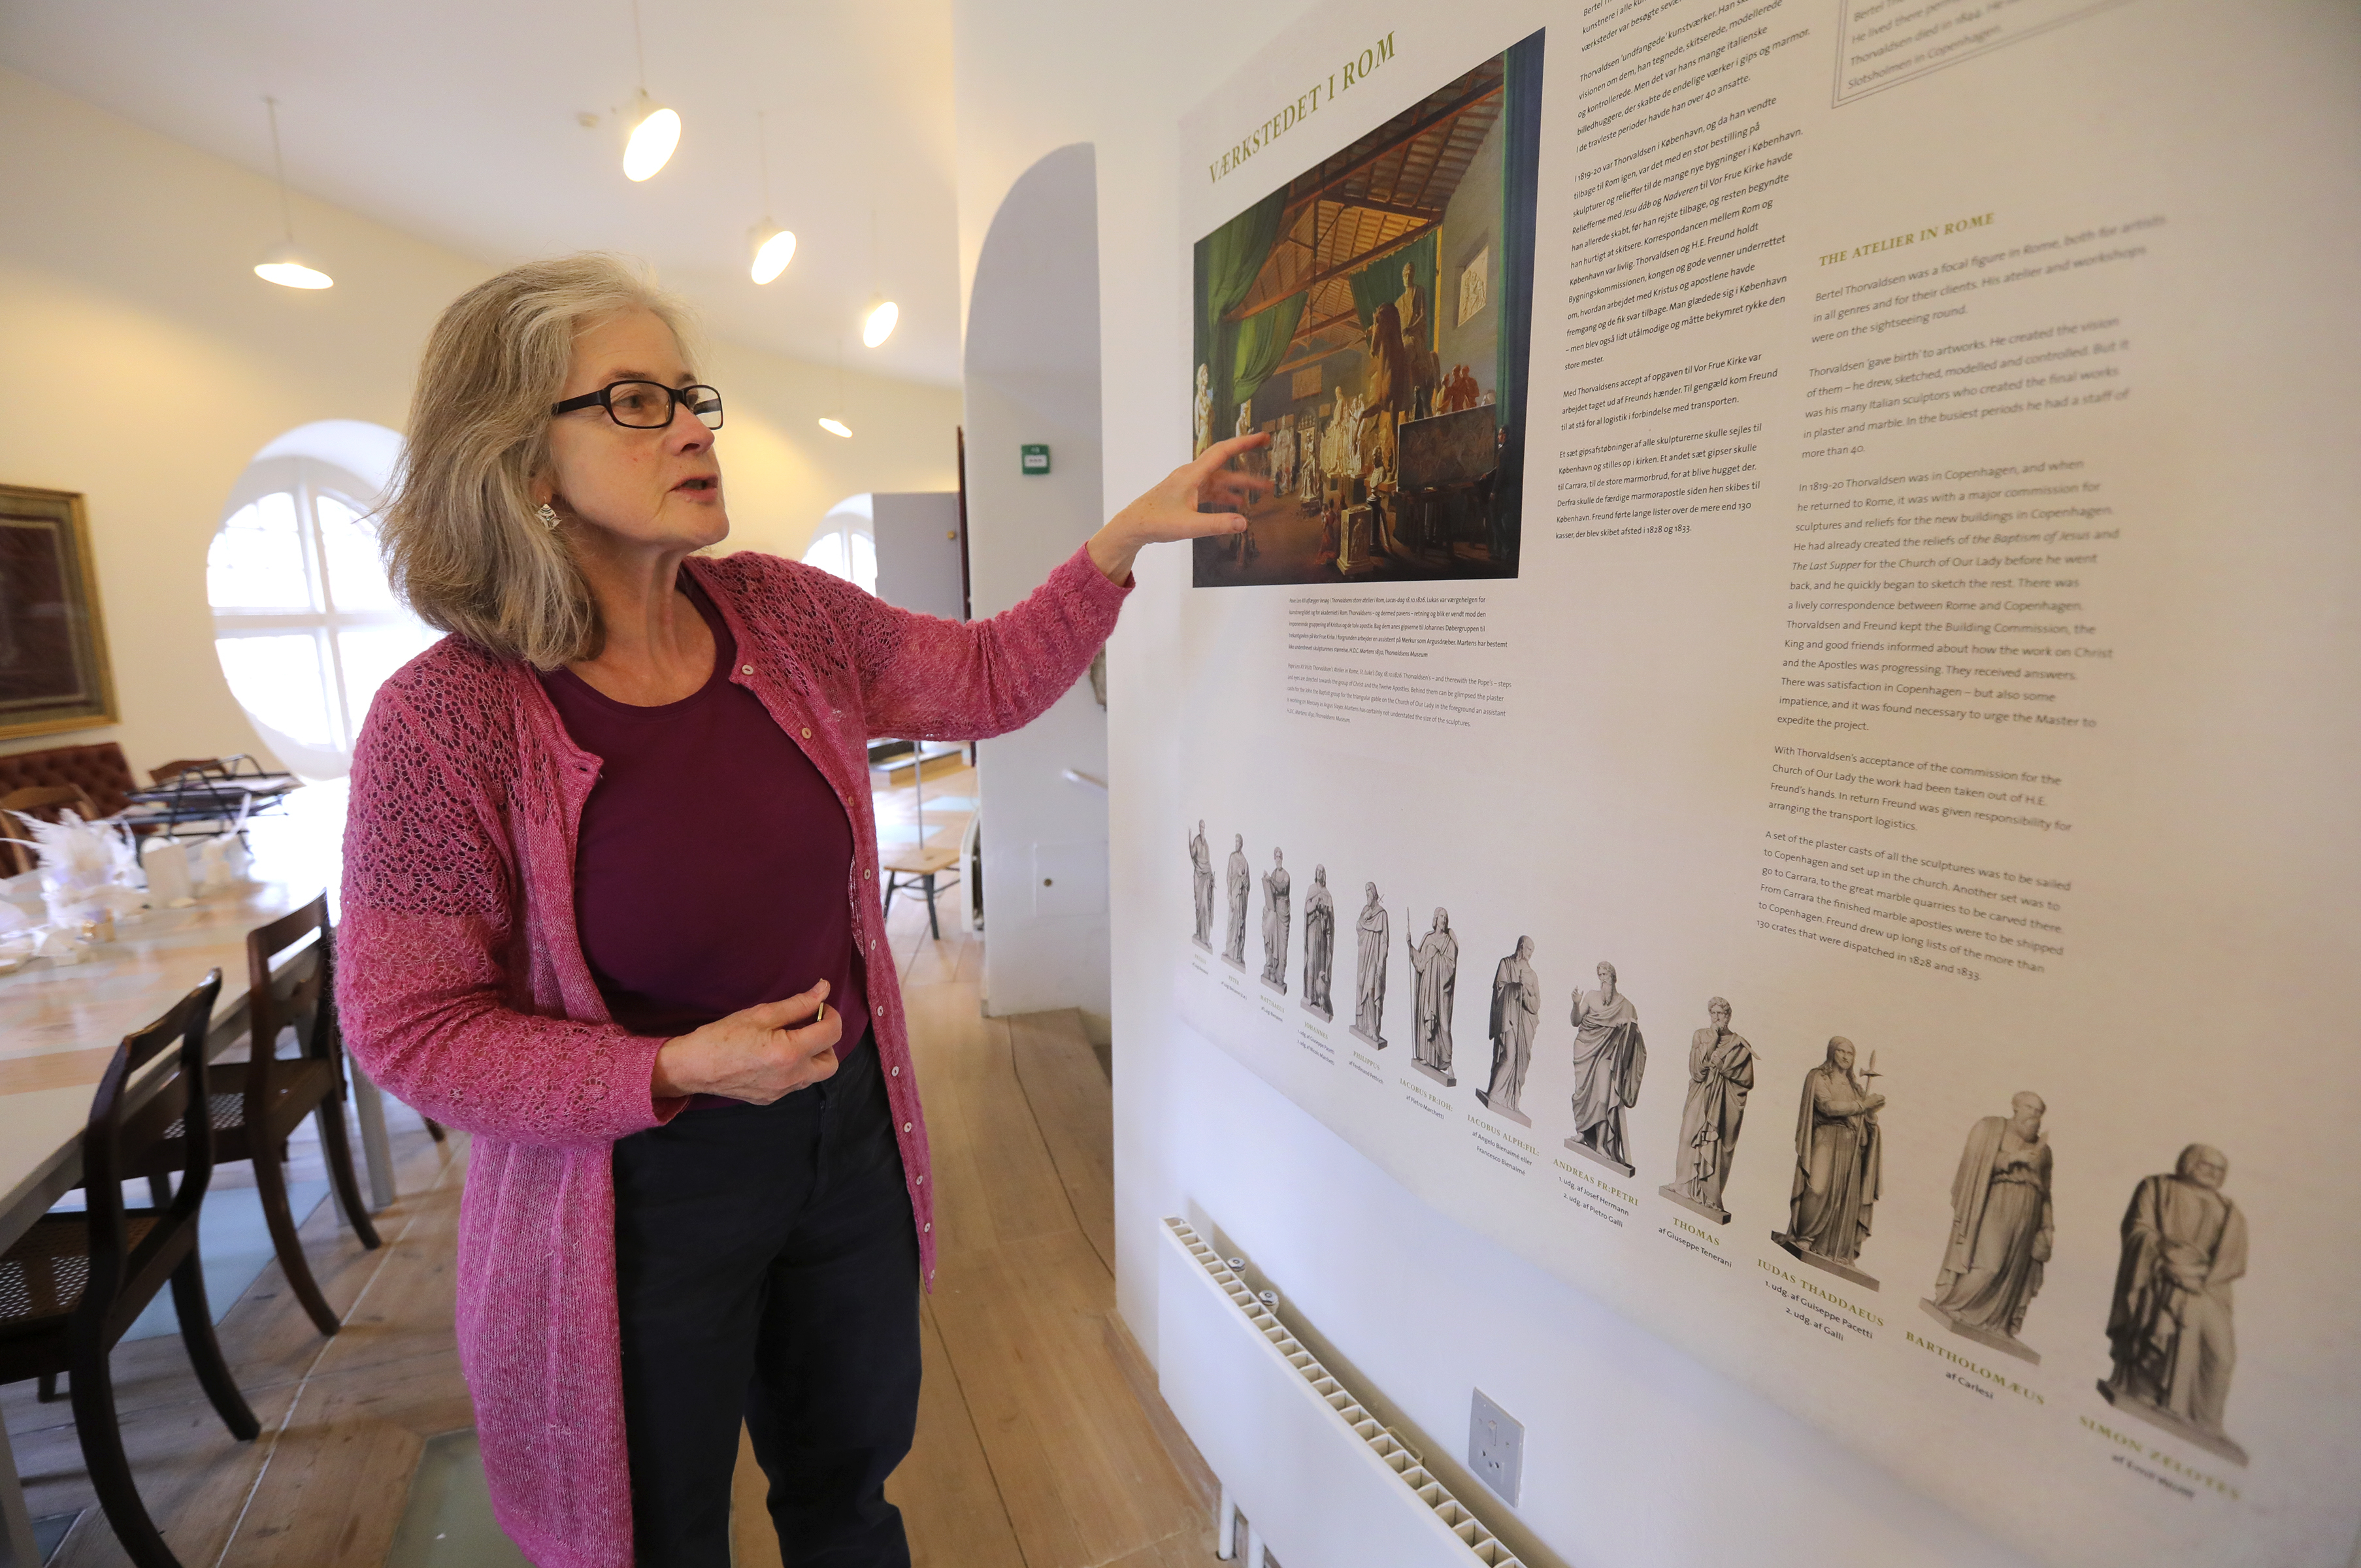 Susanne Torgard, curator for the museum of the Church of Our Lady, talks about Danish sculptor Bertel Thorvaldsen, who created Christus and the 12 apostle statues, at the Church of Our Lady in Copenhagen, Denmark, on Tuesday, Nov. 13, 2018.